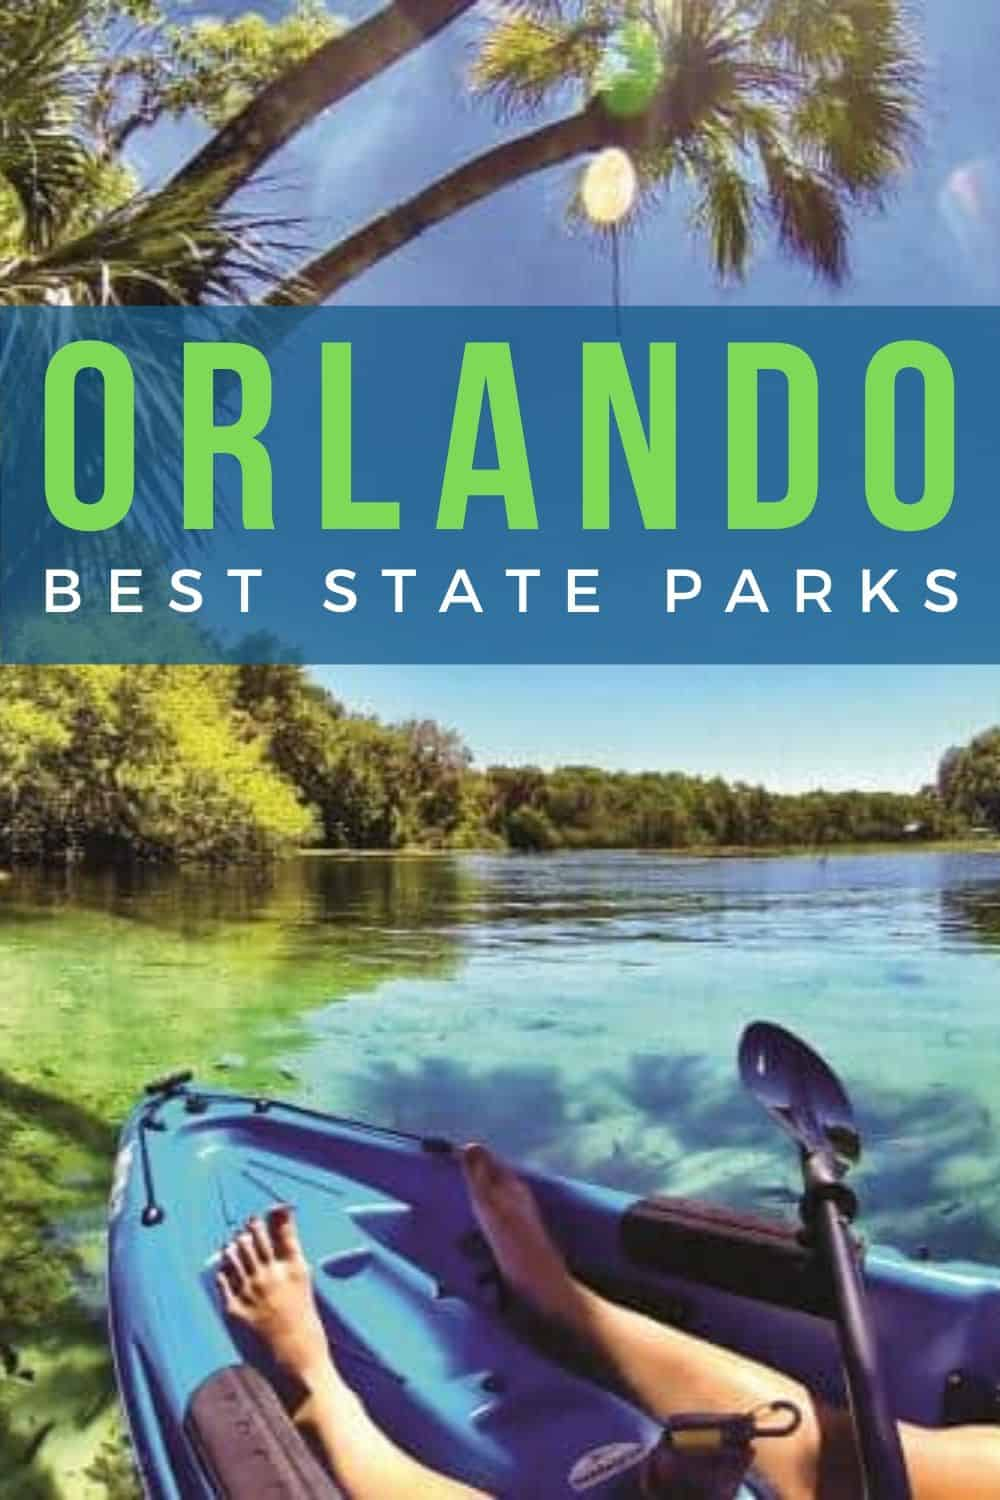 Best State Parks near Orlando for Camping